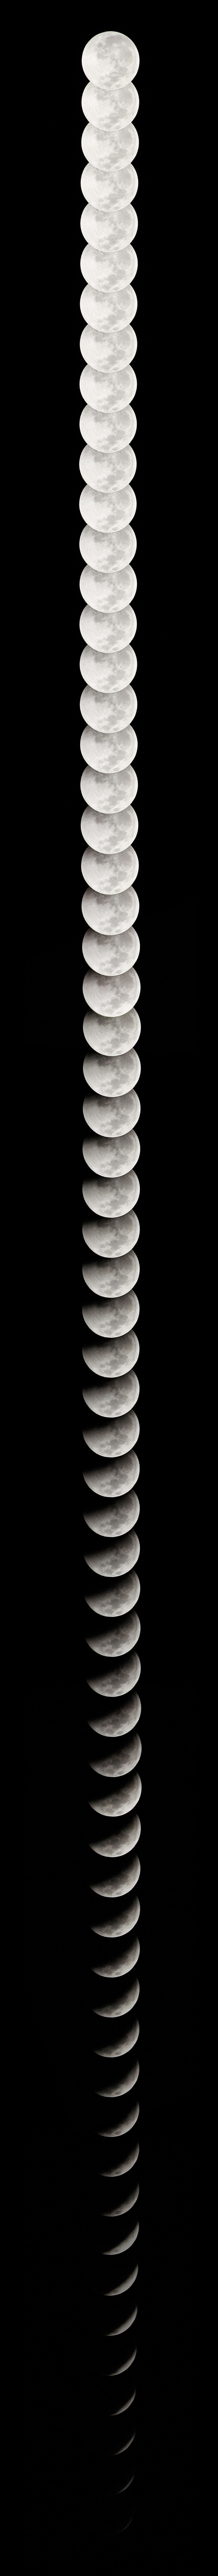 time-lapse photo of lunar eclipse